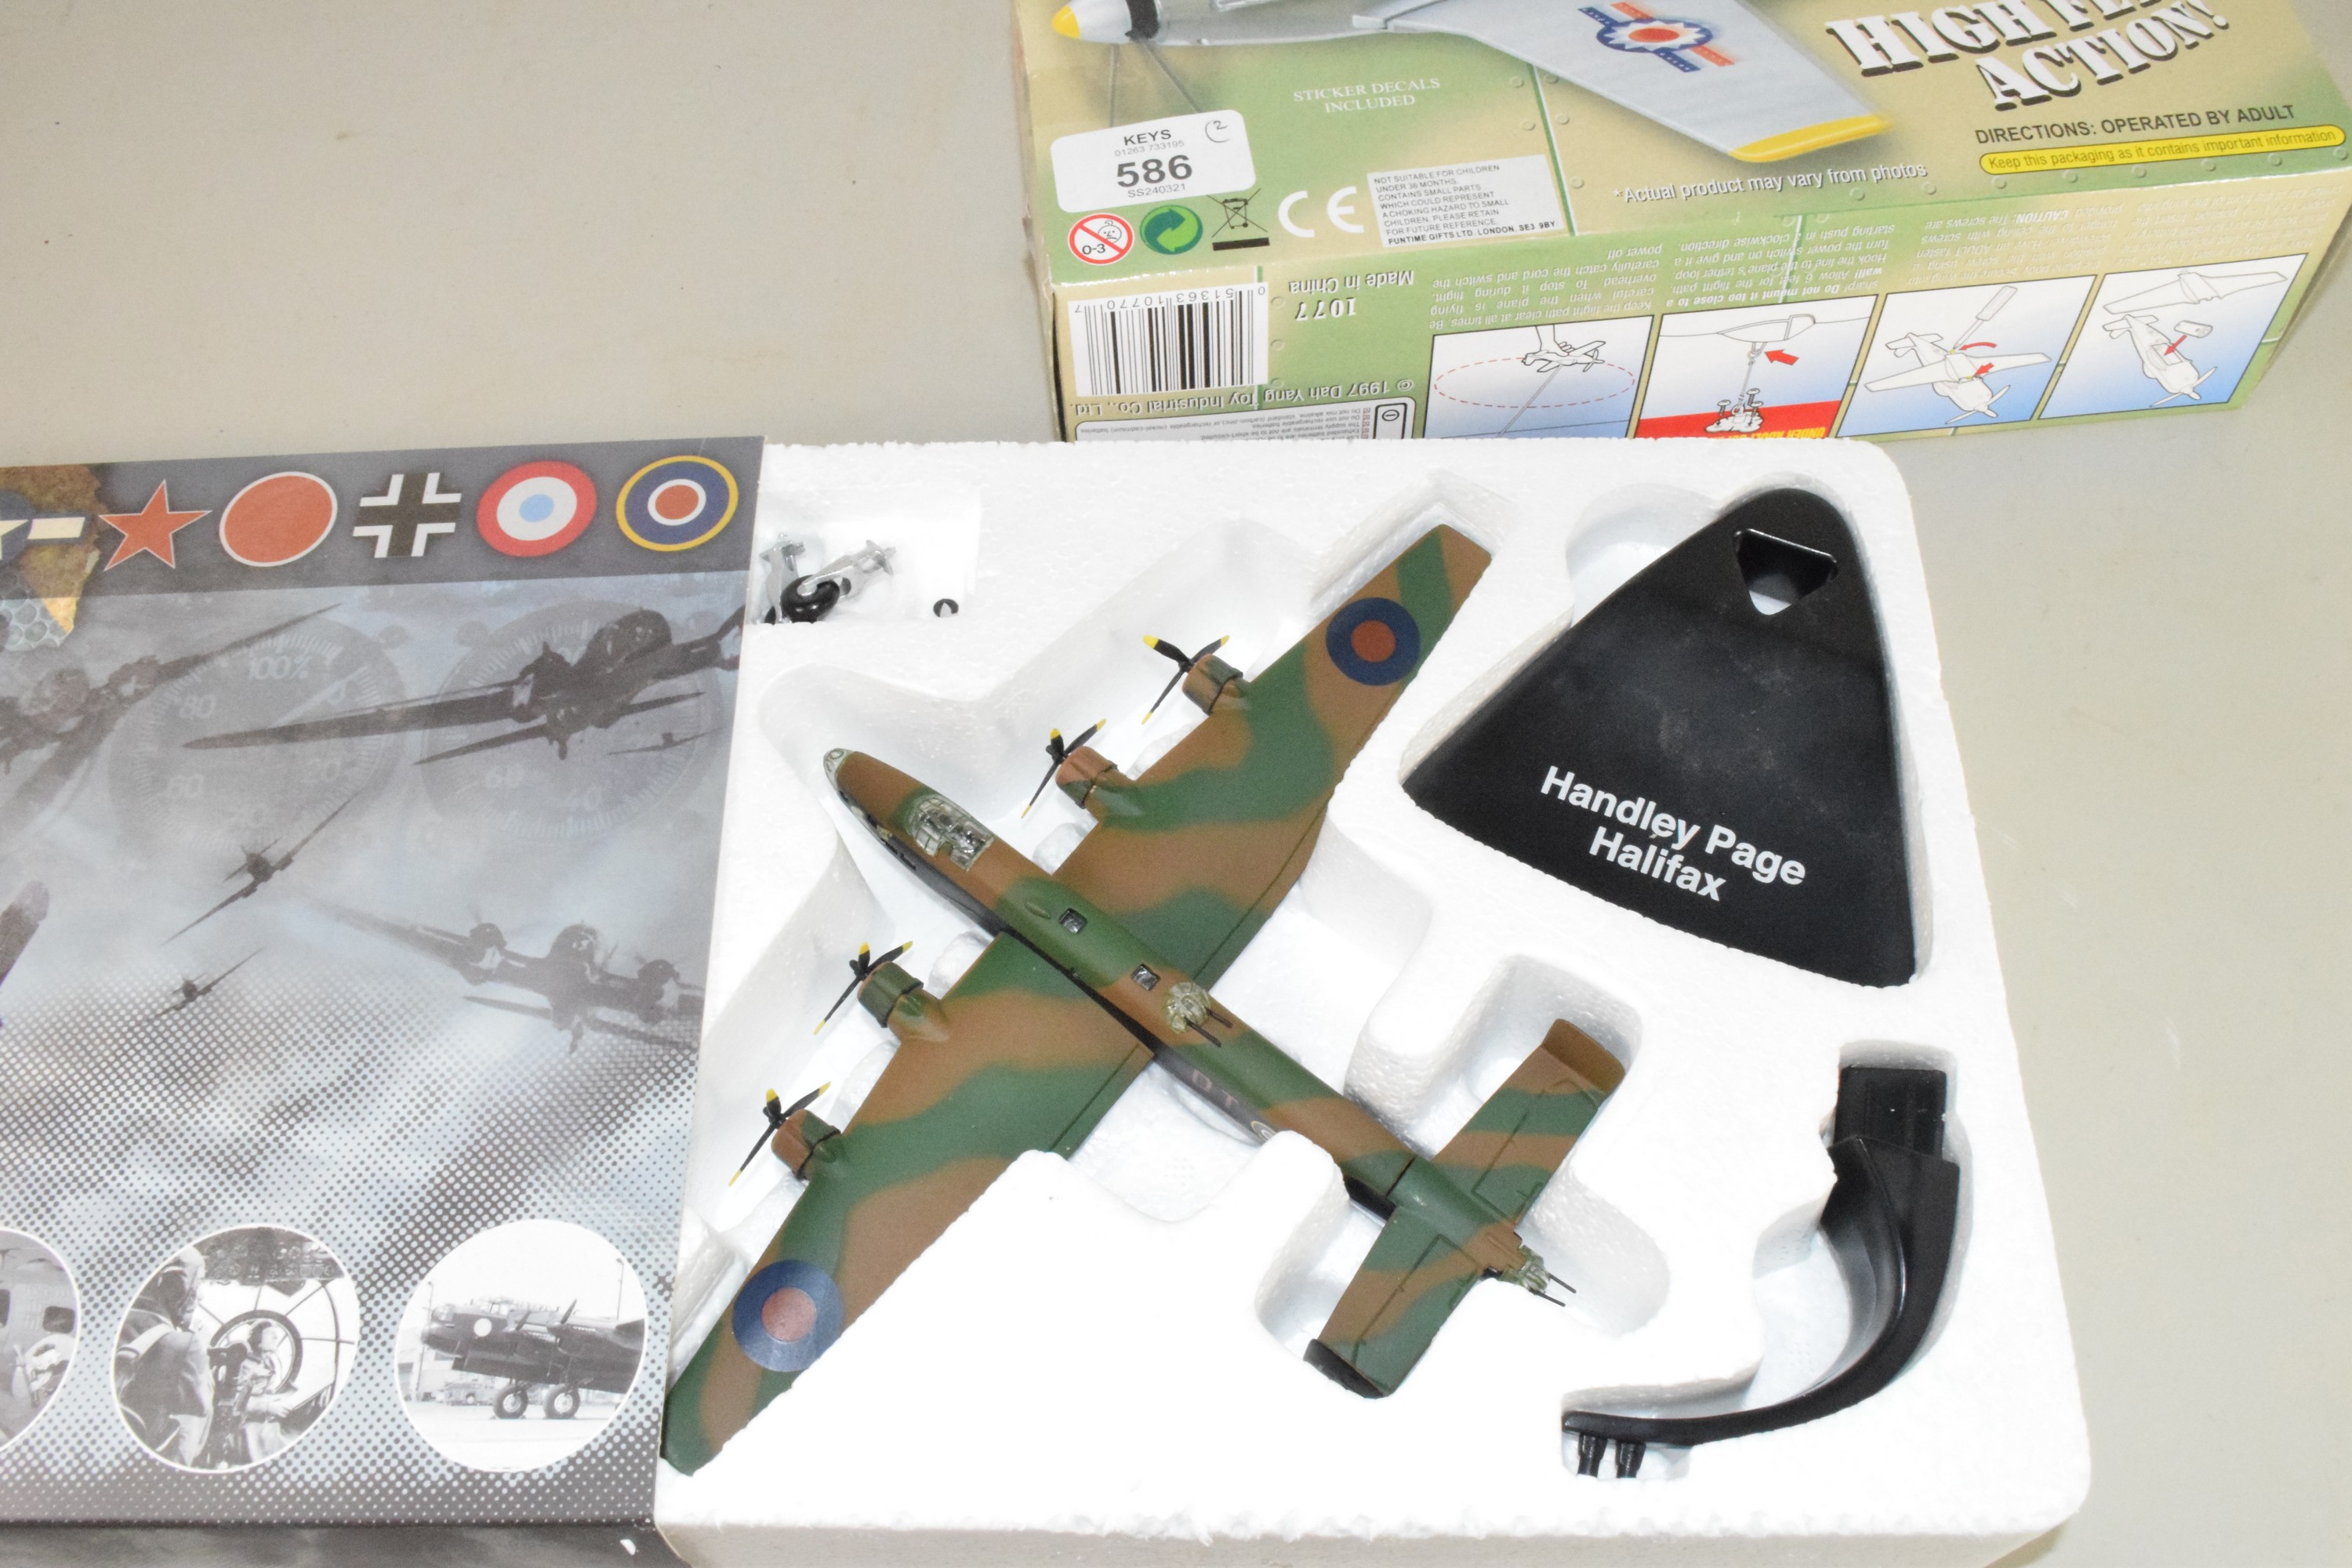 Boxed Skyfighter aircraft together with a boxed Atlas Editions WWII aircraft - Image 2 of 2